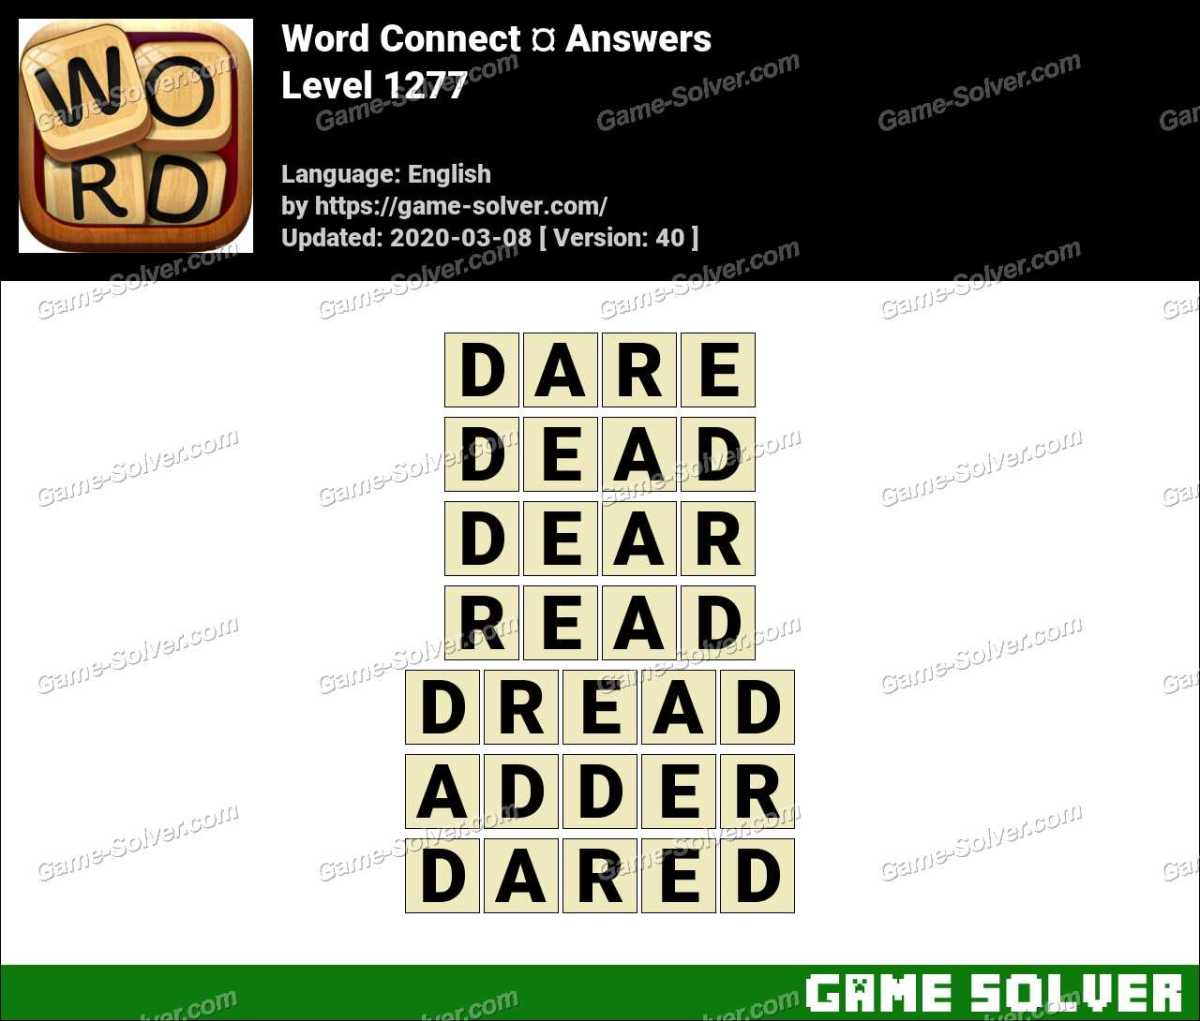 Word Connect Level 1277 Answers